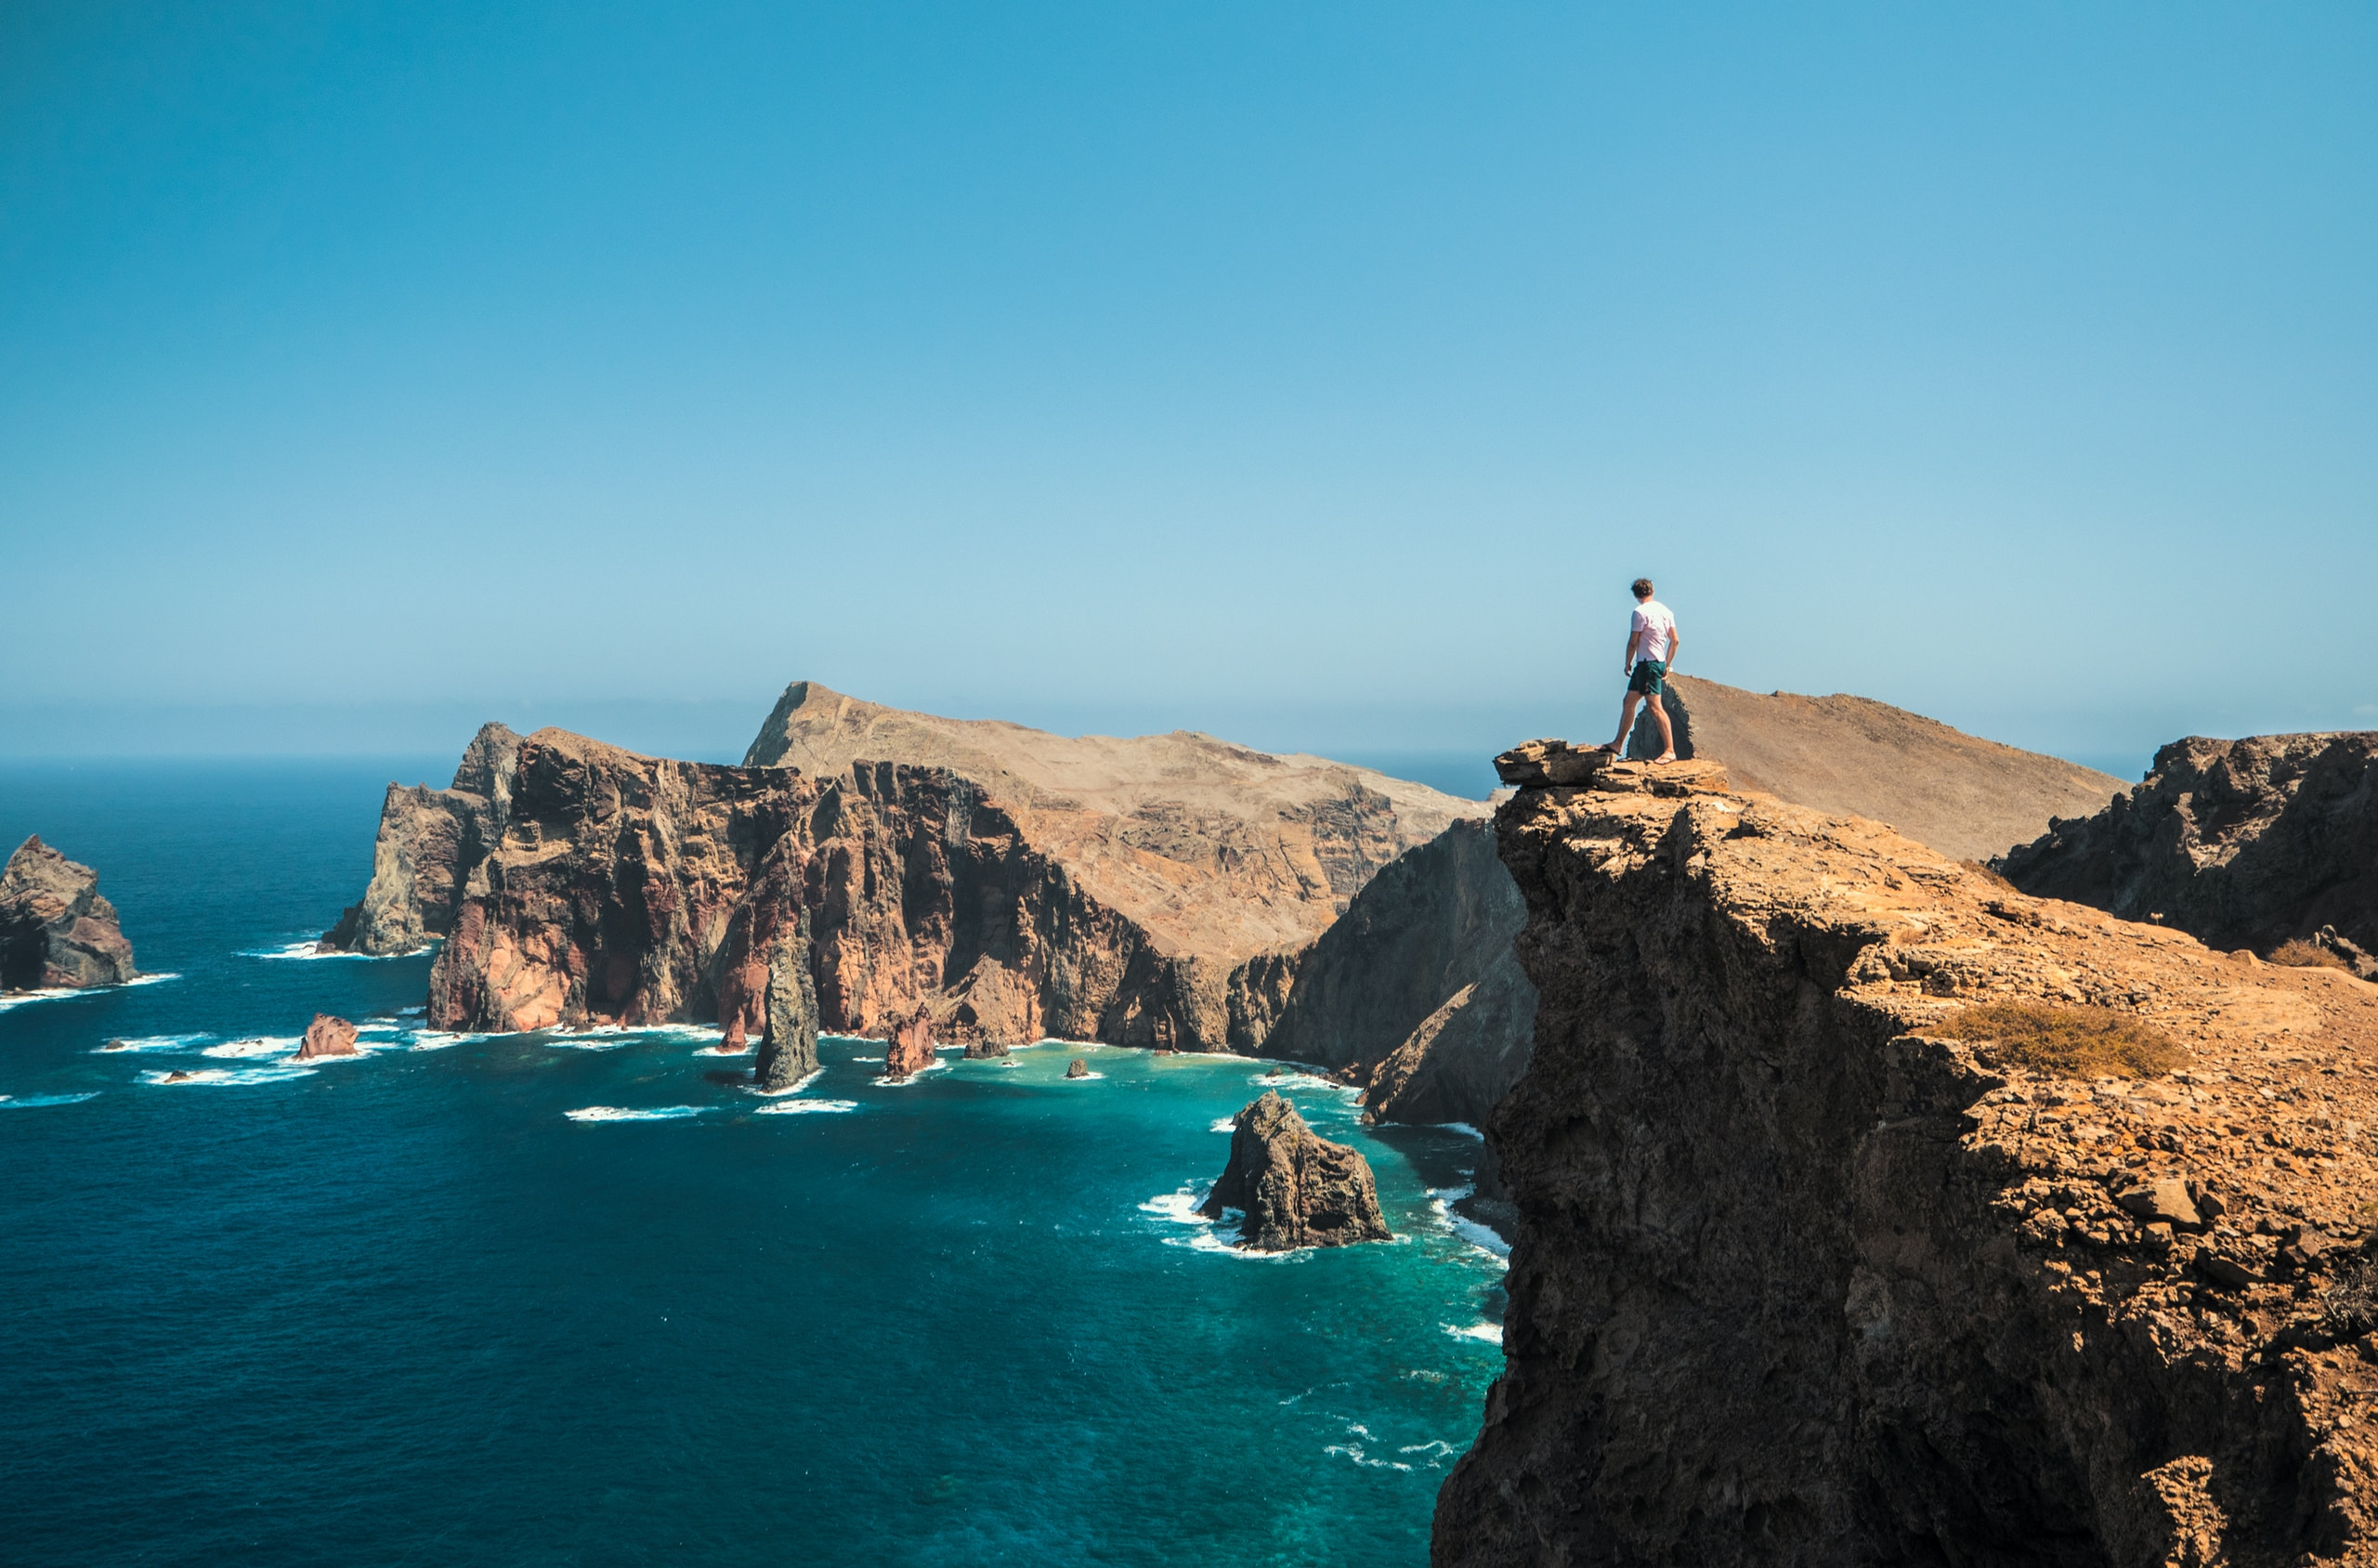 man standing on brown rock formation near blue sea during daytime